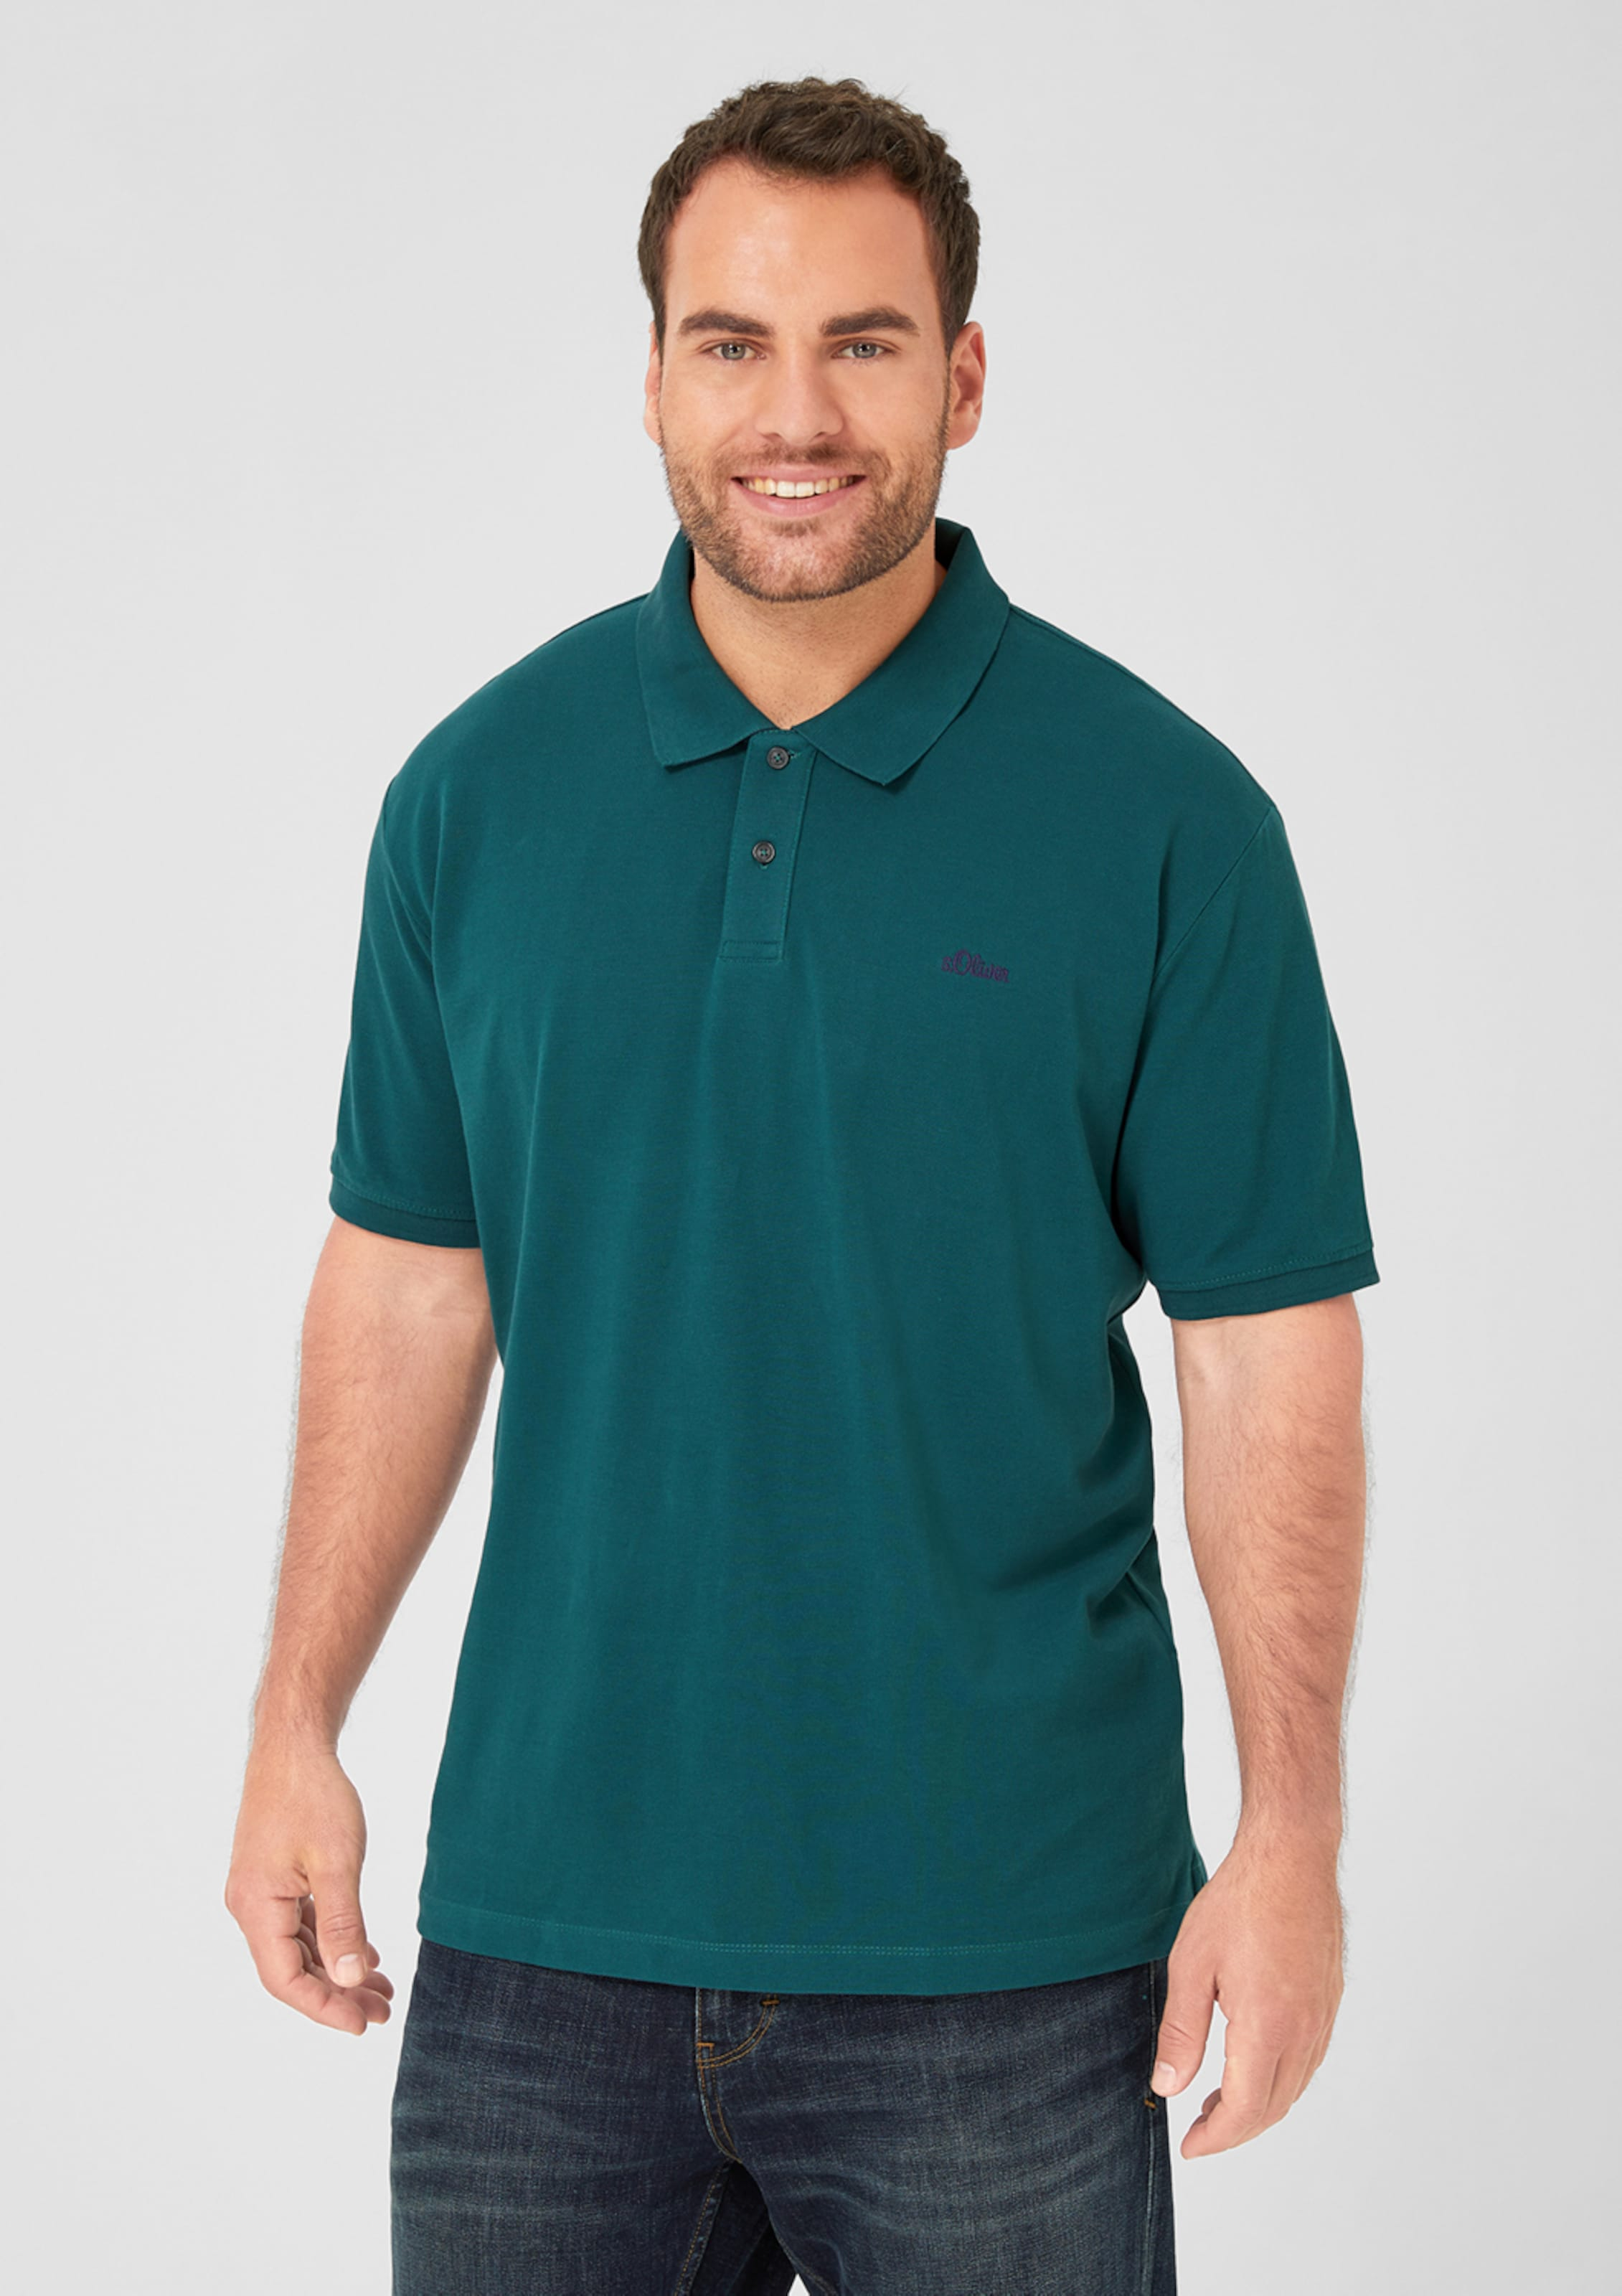 Poloshirt Petrol oliver In S Red Label qSVUzpLGM